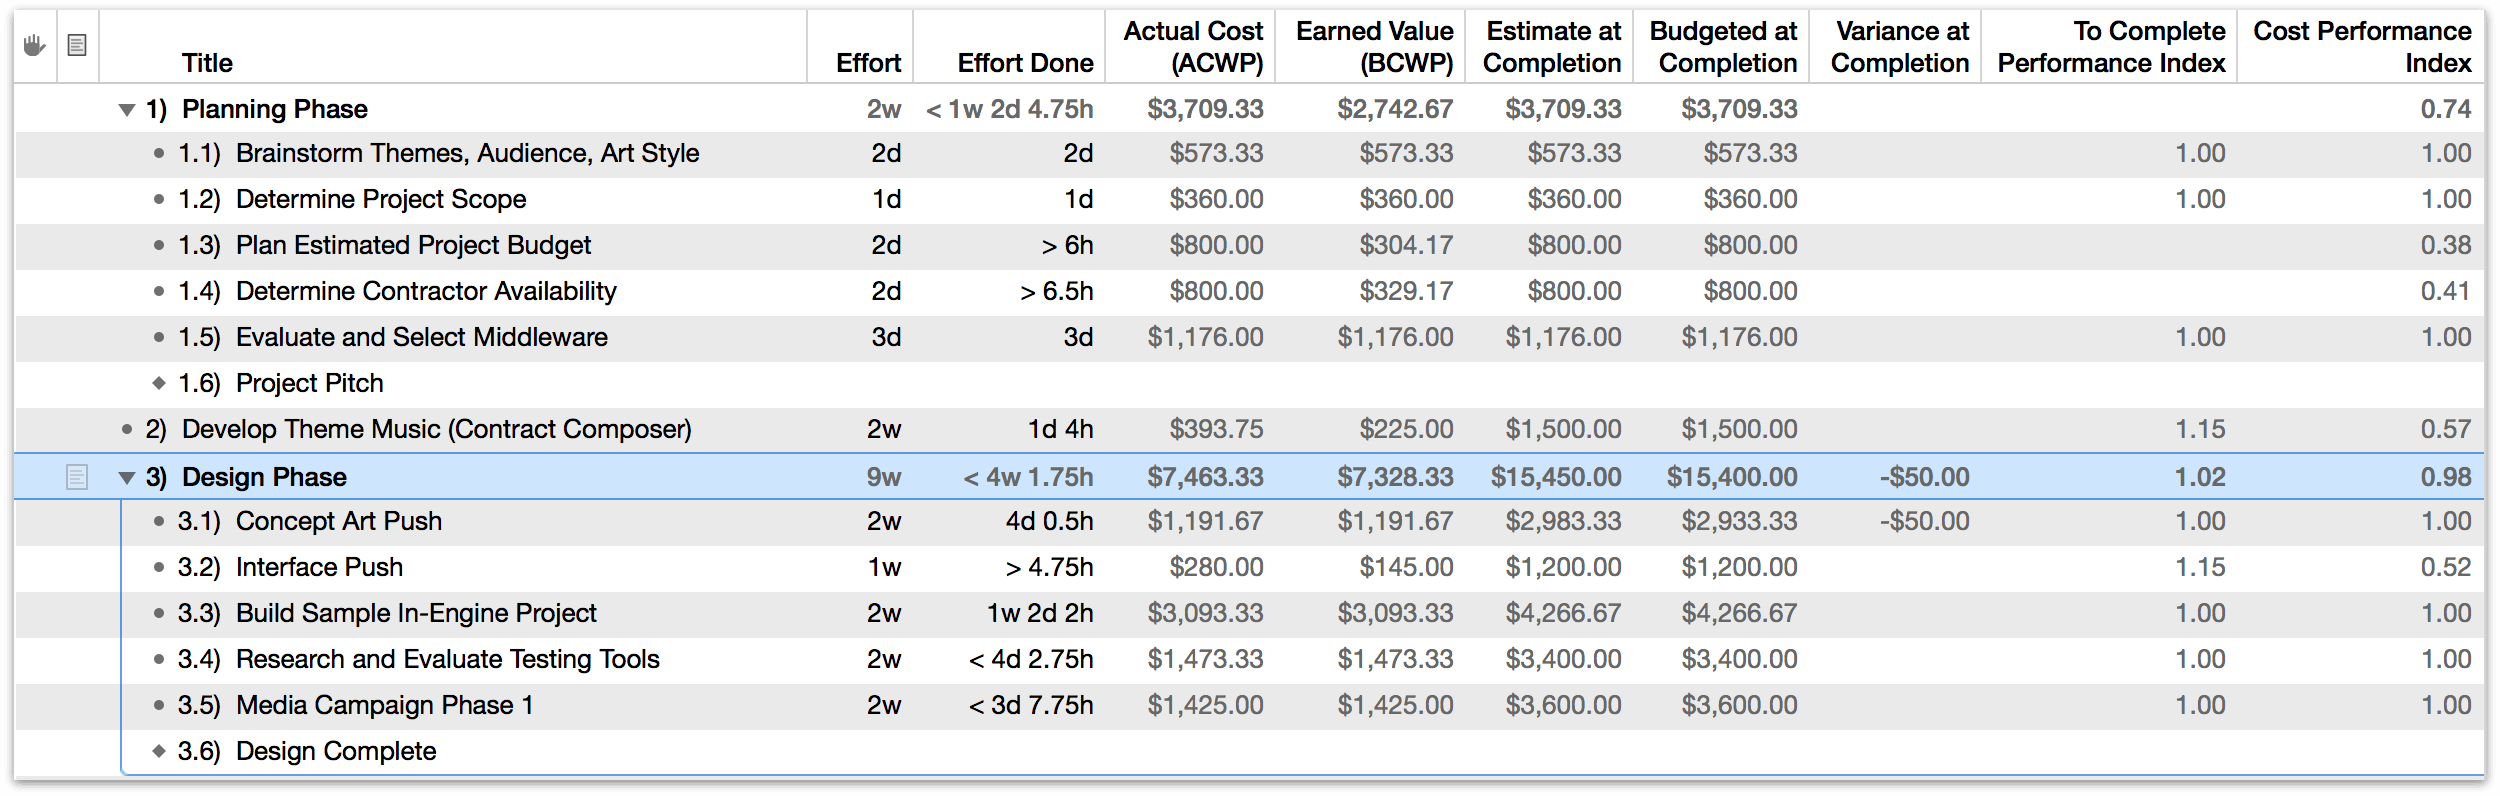 Earned Value Analysis columns related to task completion.